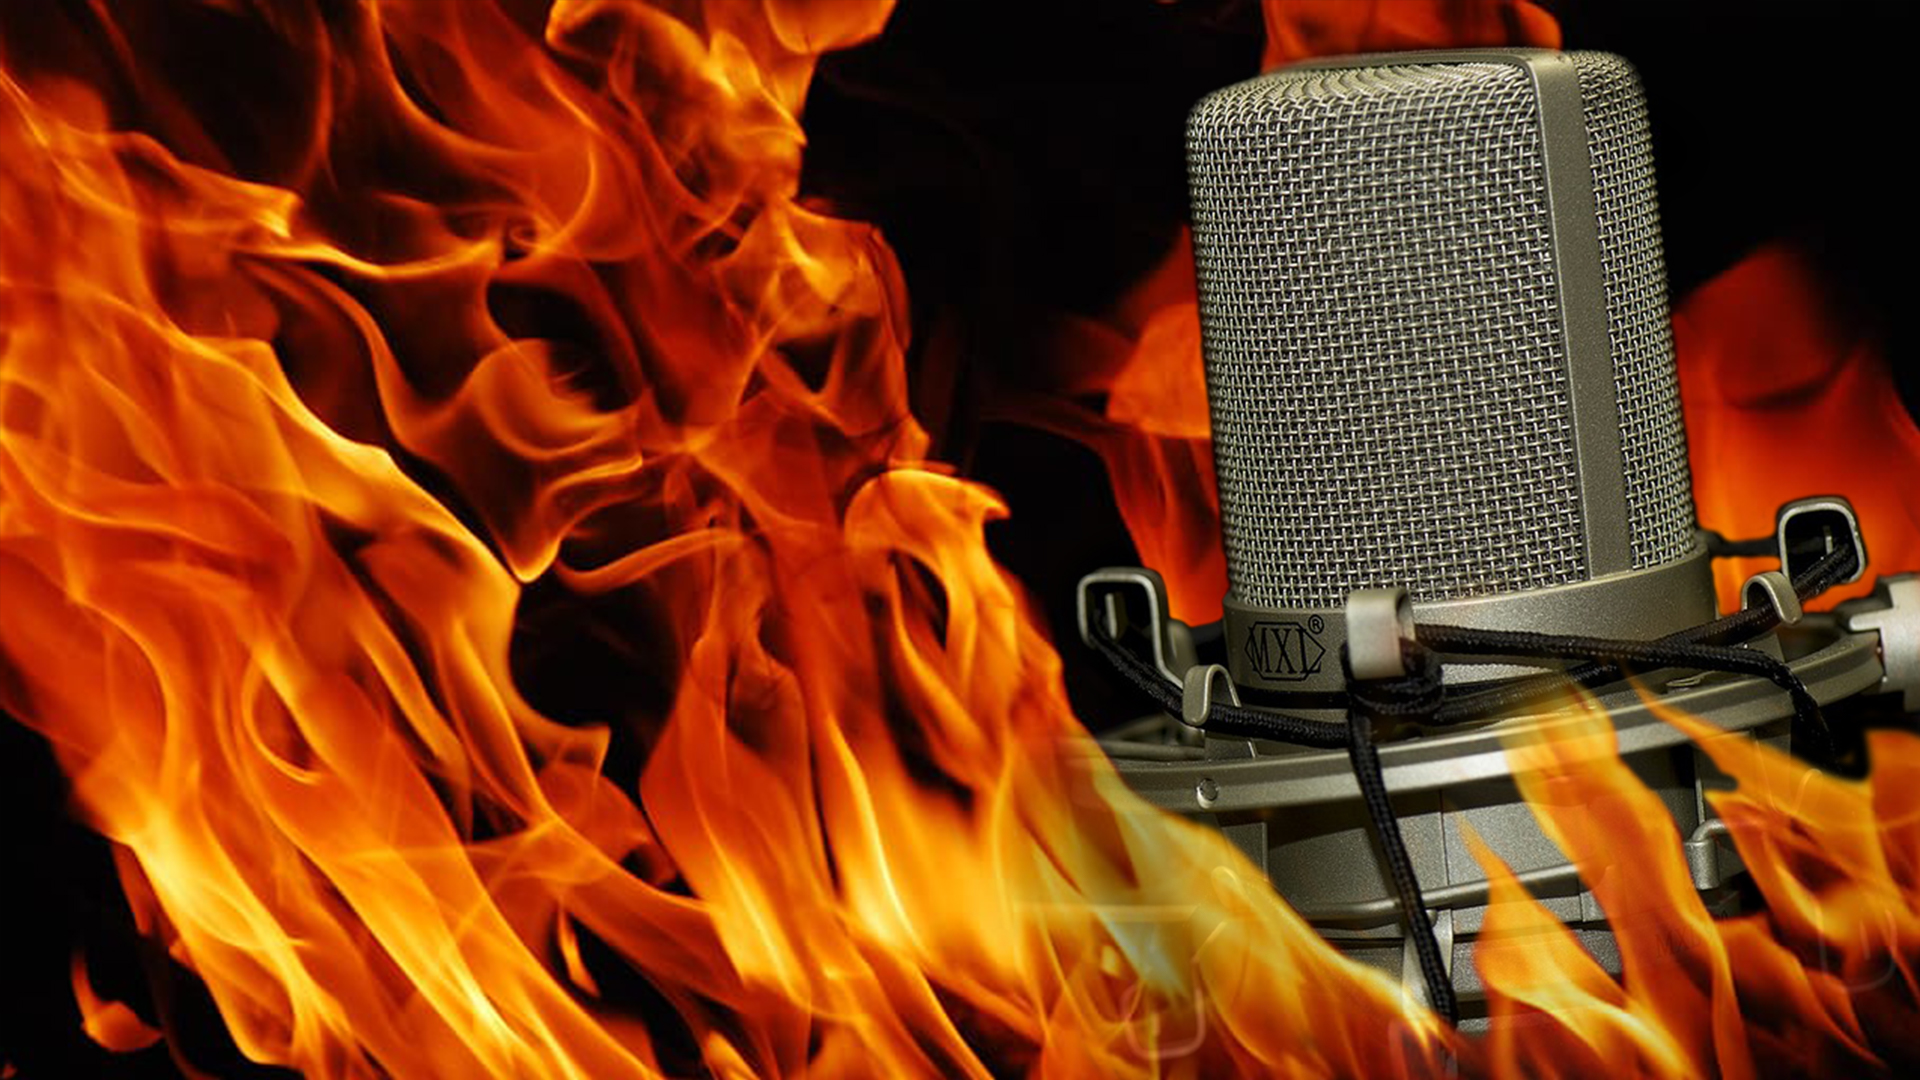 A microphone is surrounded by fire in this photo illustration.